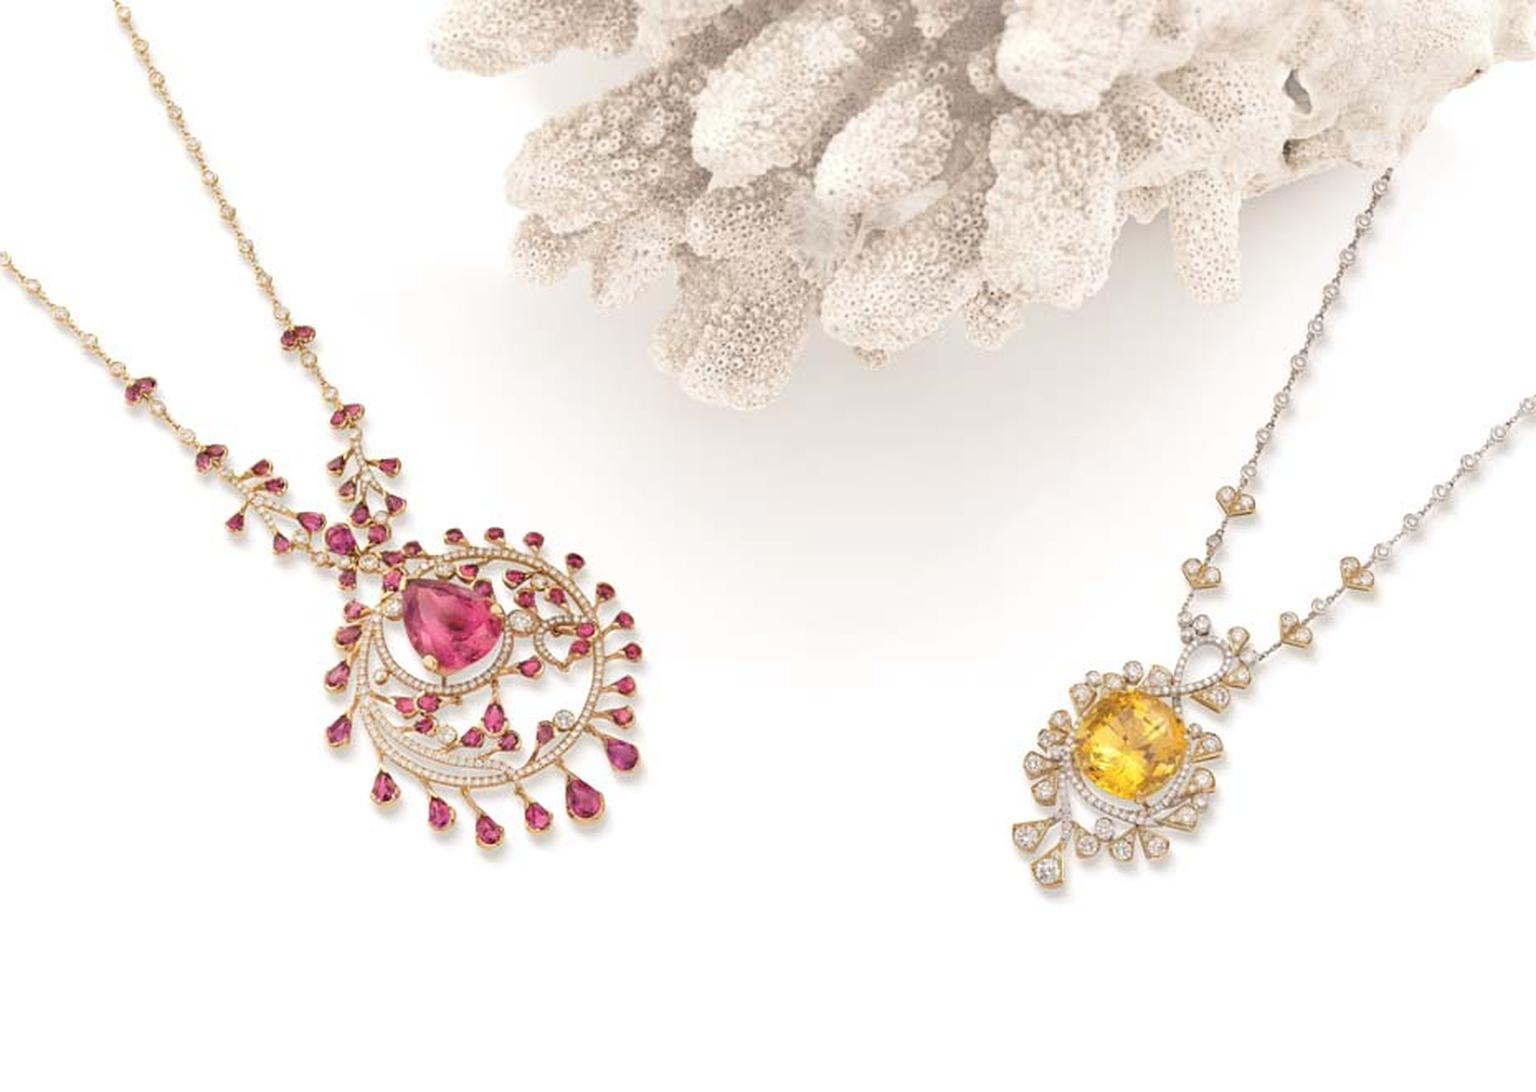 Boodles Ocean of Dreams necklaces with either yellow sapphires and diamonds or pink tourmalines encircled by rubellites and diamonds, from the new 'Ocean of Dreams' collection.